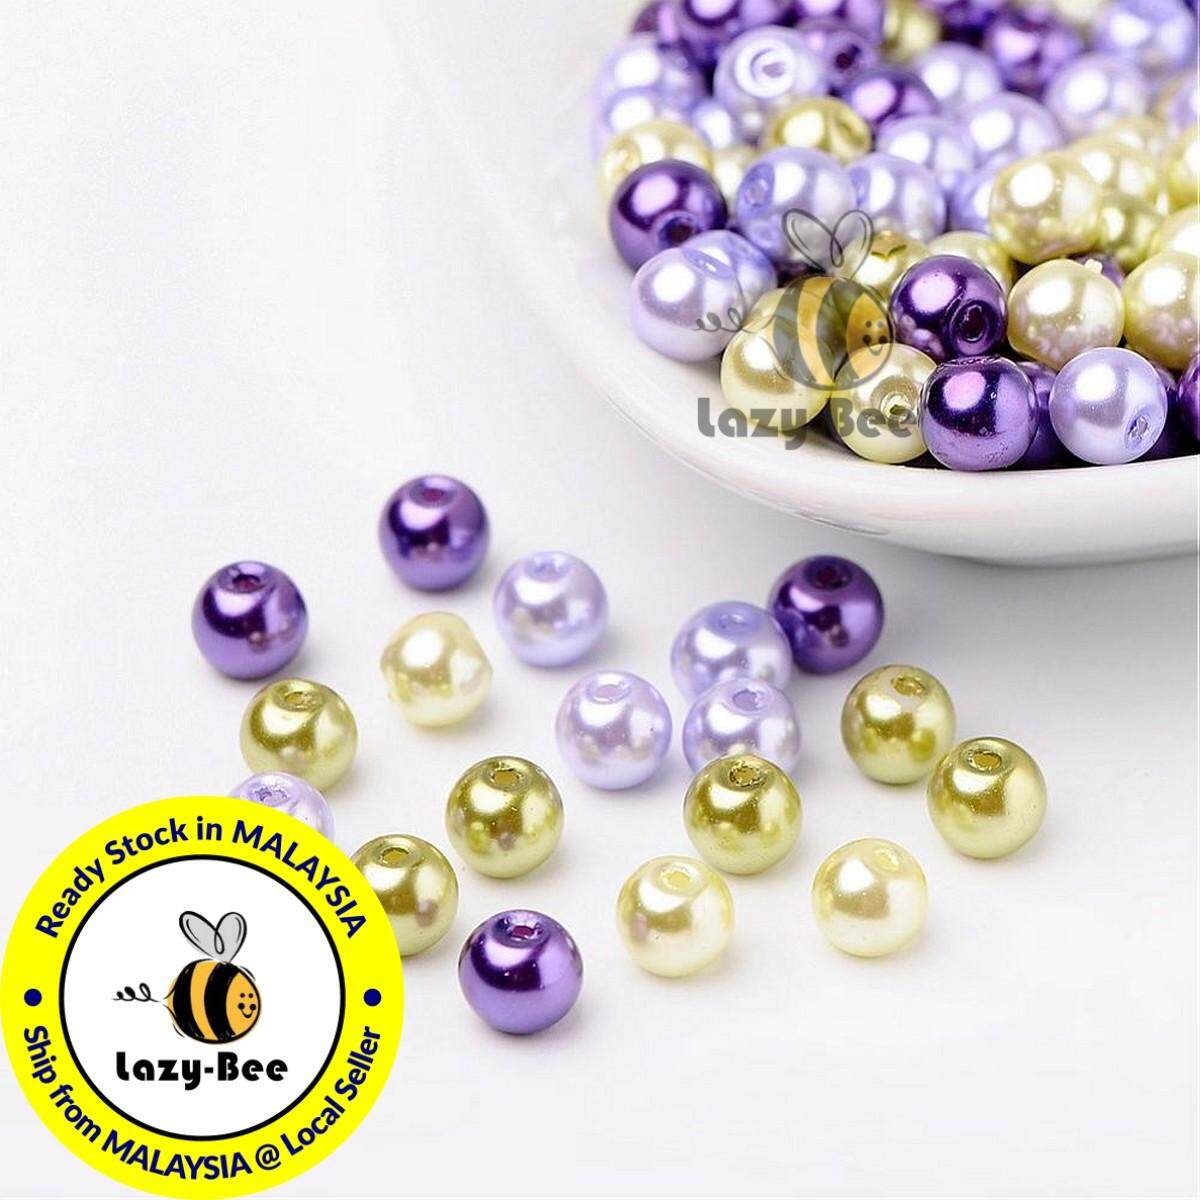 1 Bag Pearlized Glass Pearl Beads Mixed Color 6mm 1mm; about 200pcs//bag Hole